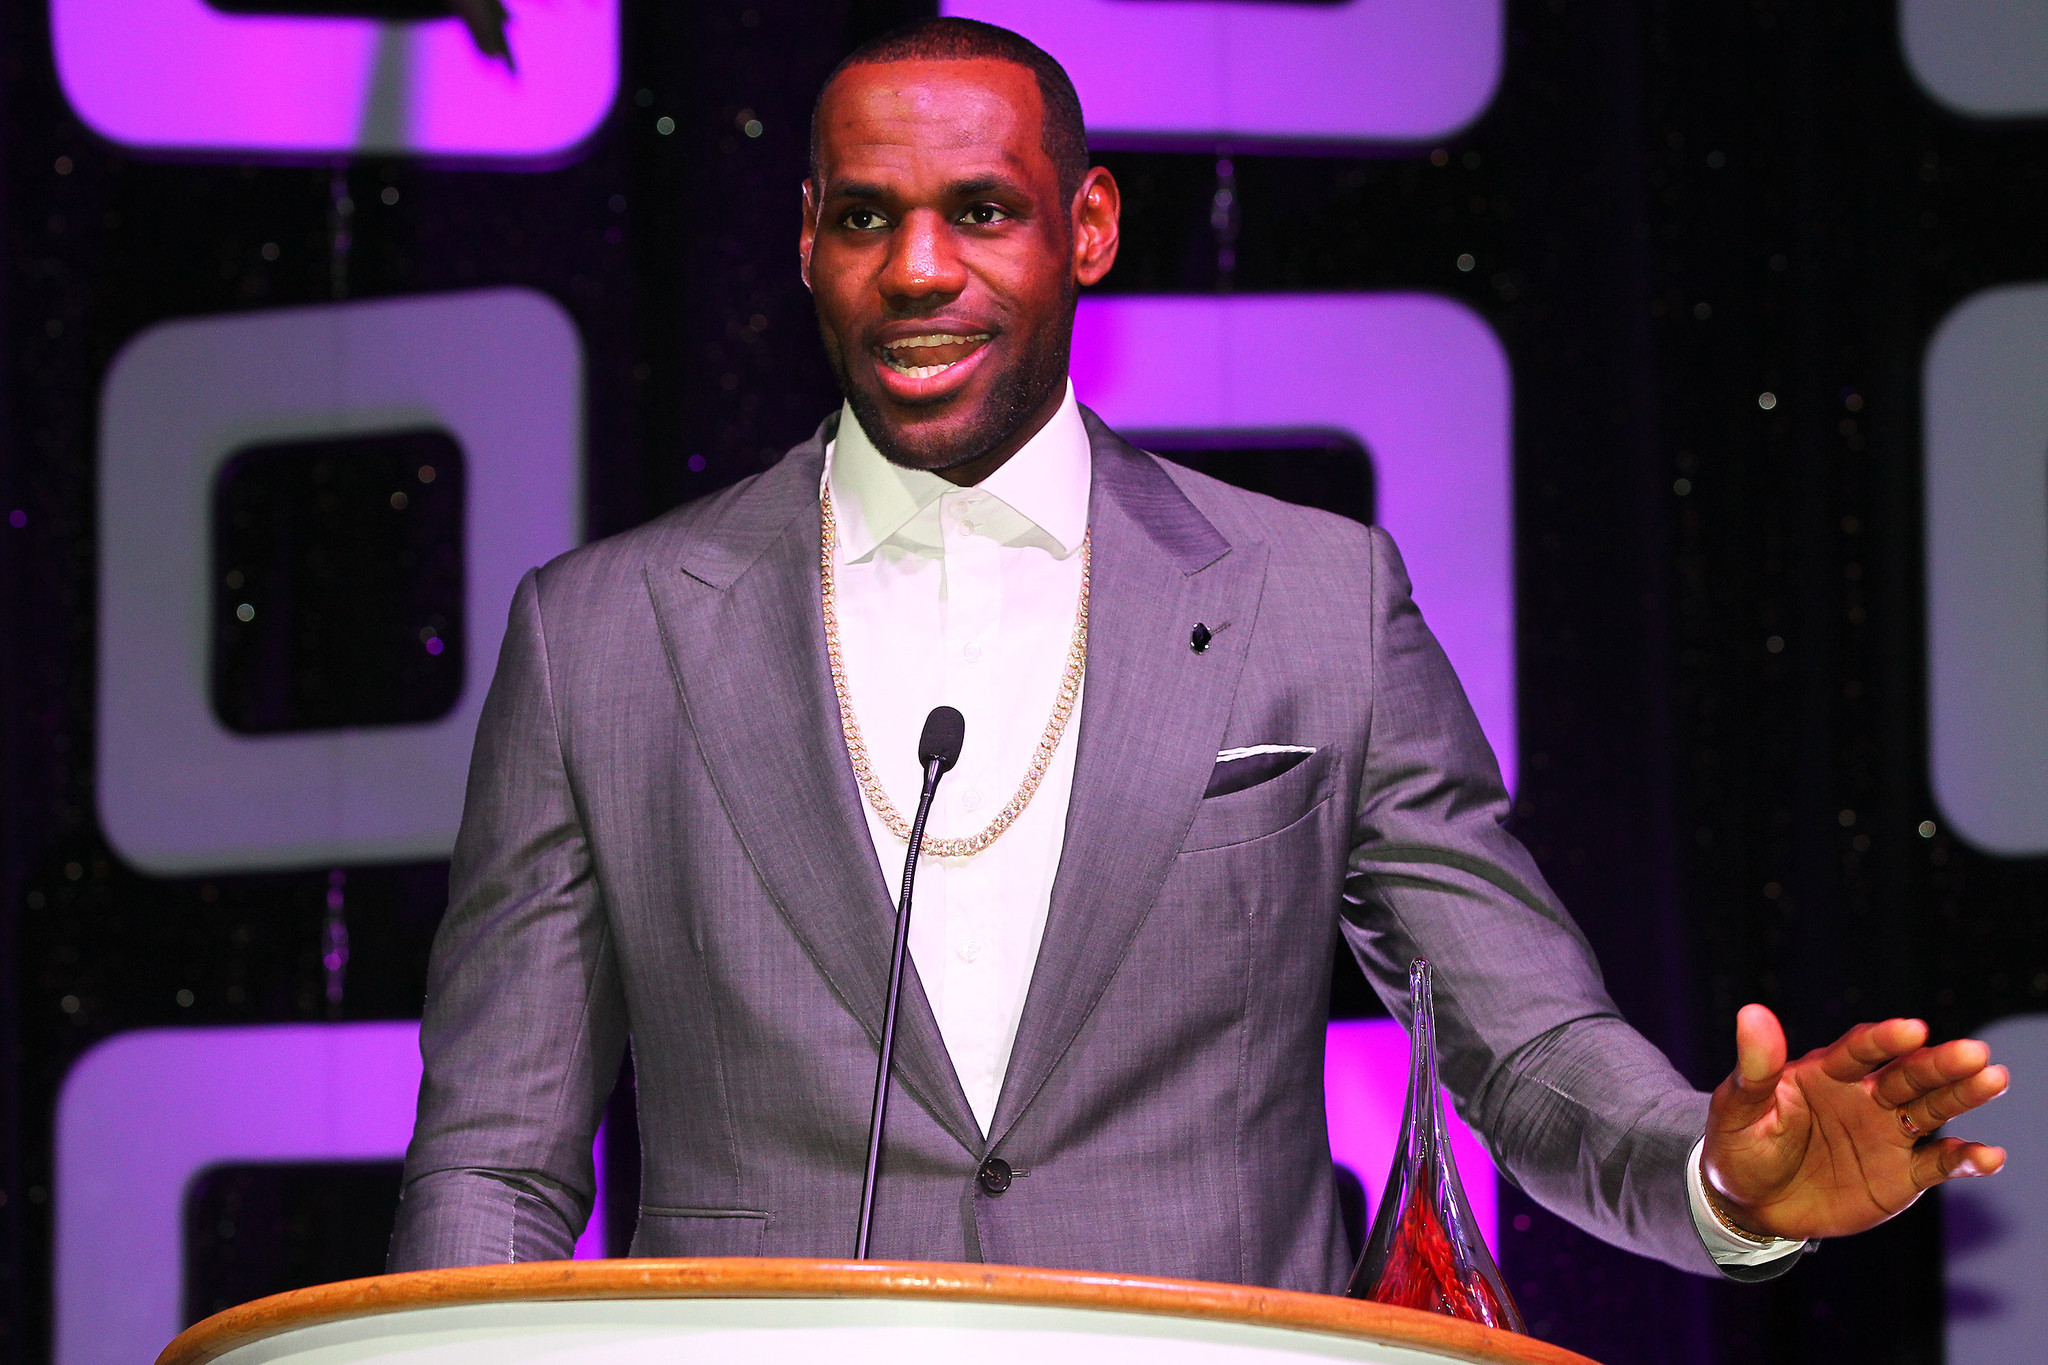 Celeb-spotting around South Florida - Lebron James